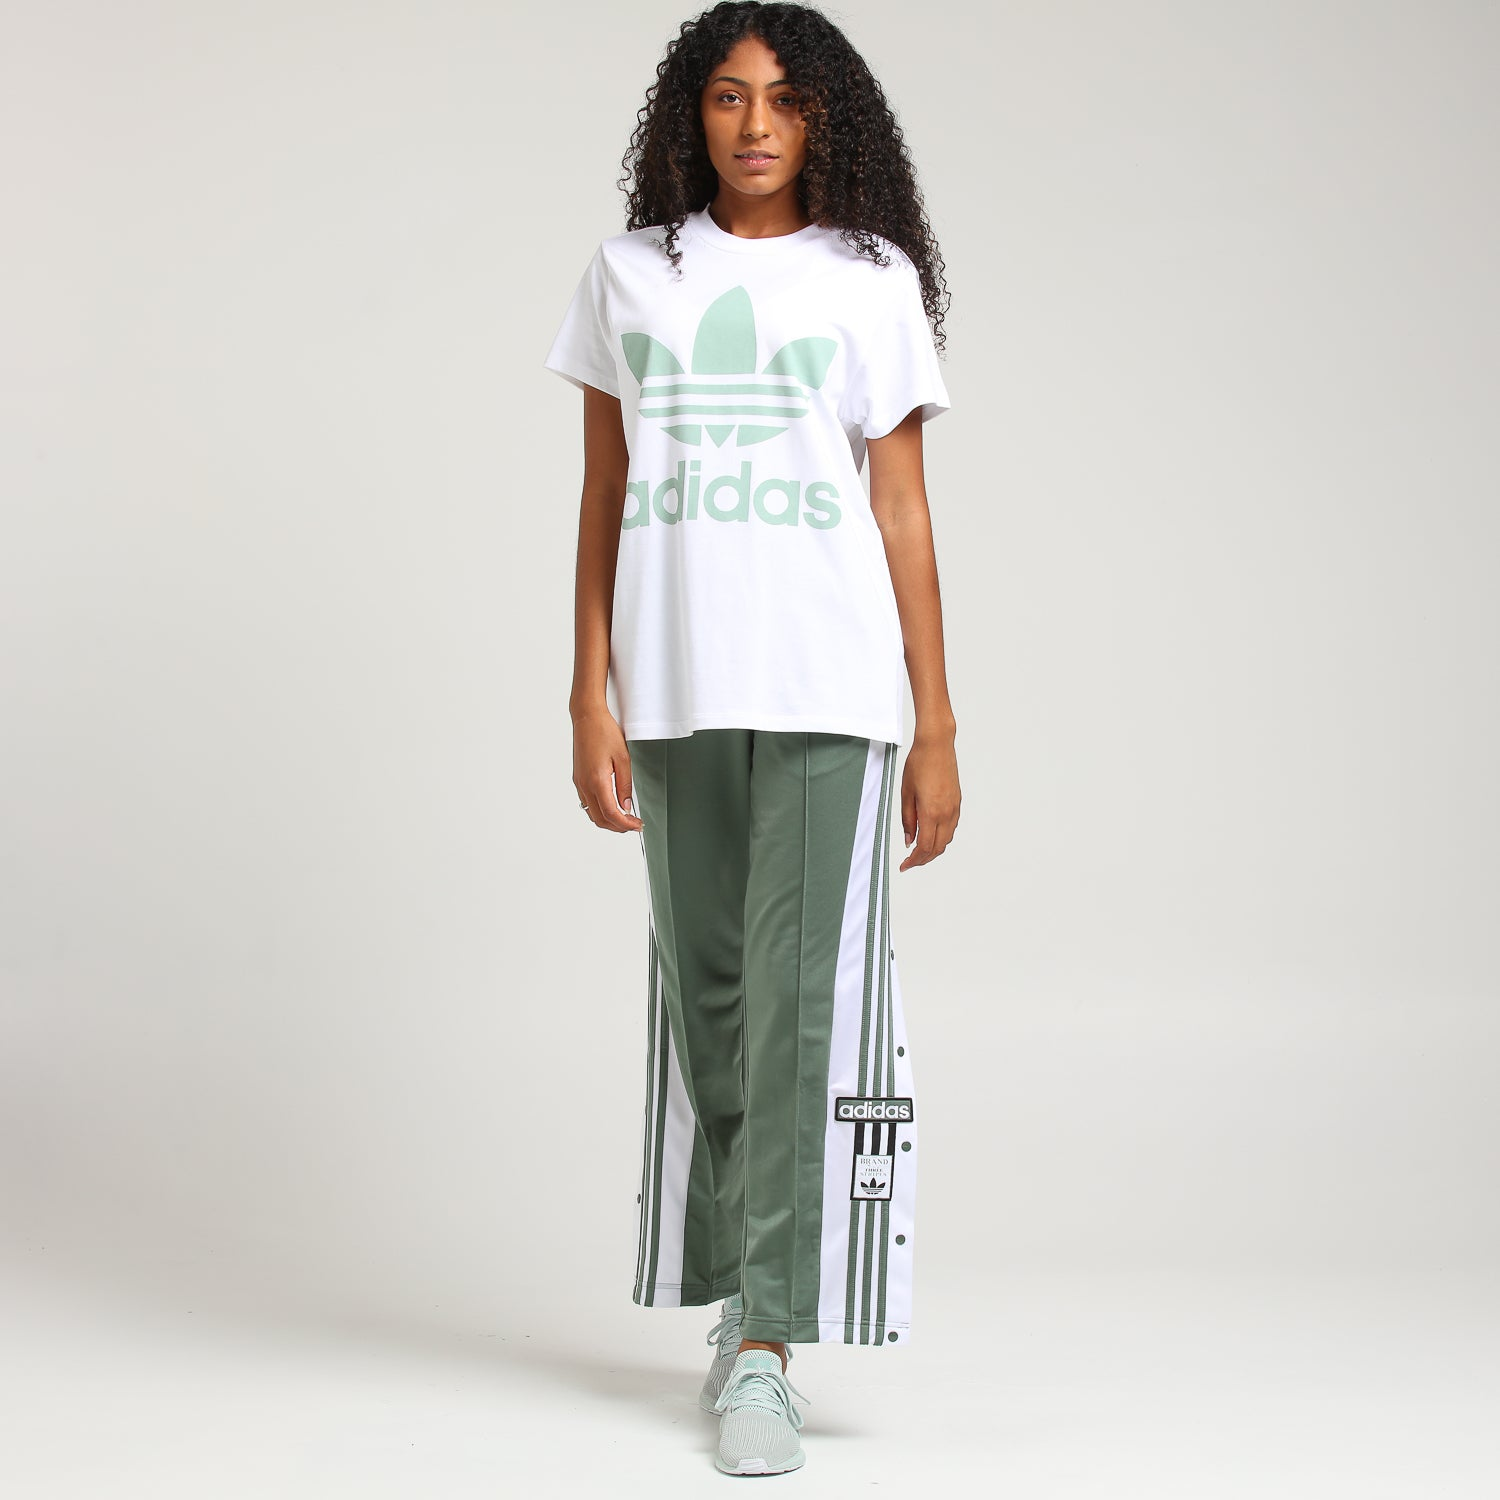 Adidas Women's Big Trefoil Tee WhiteMint